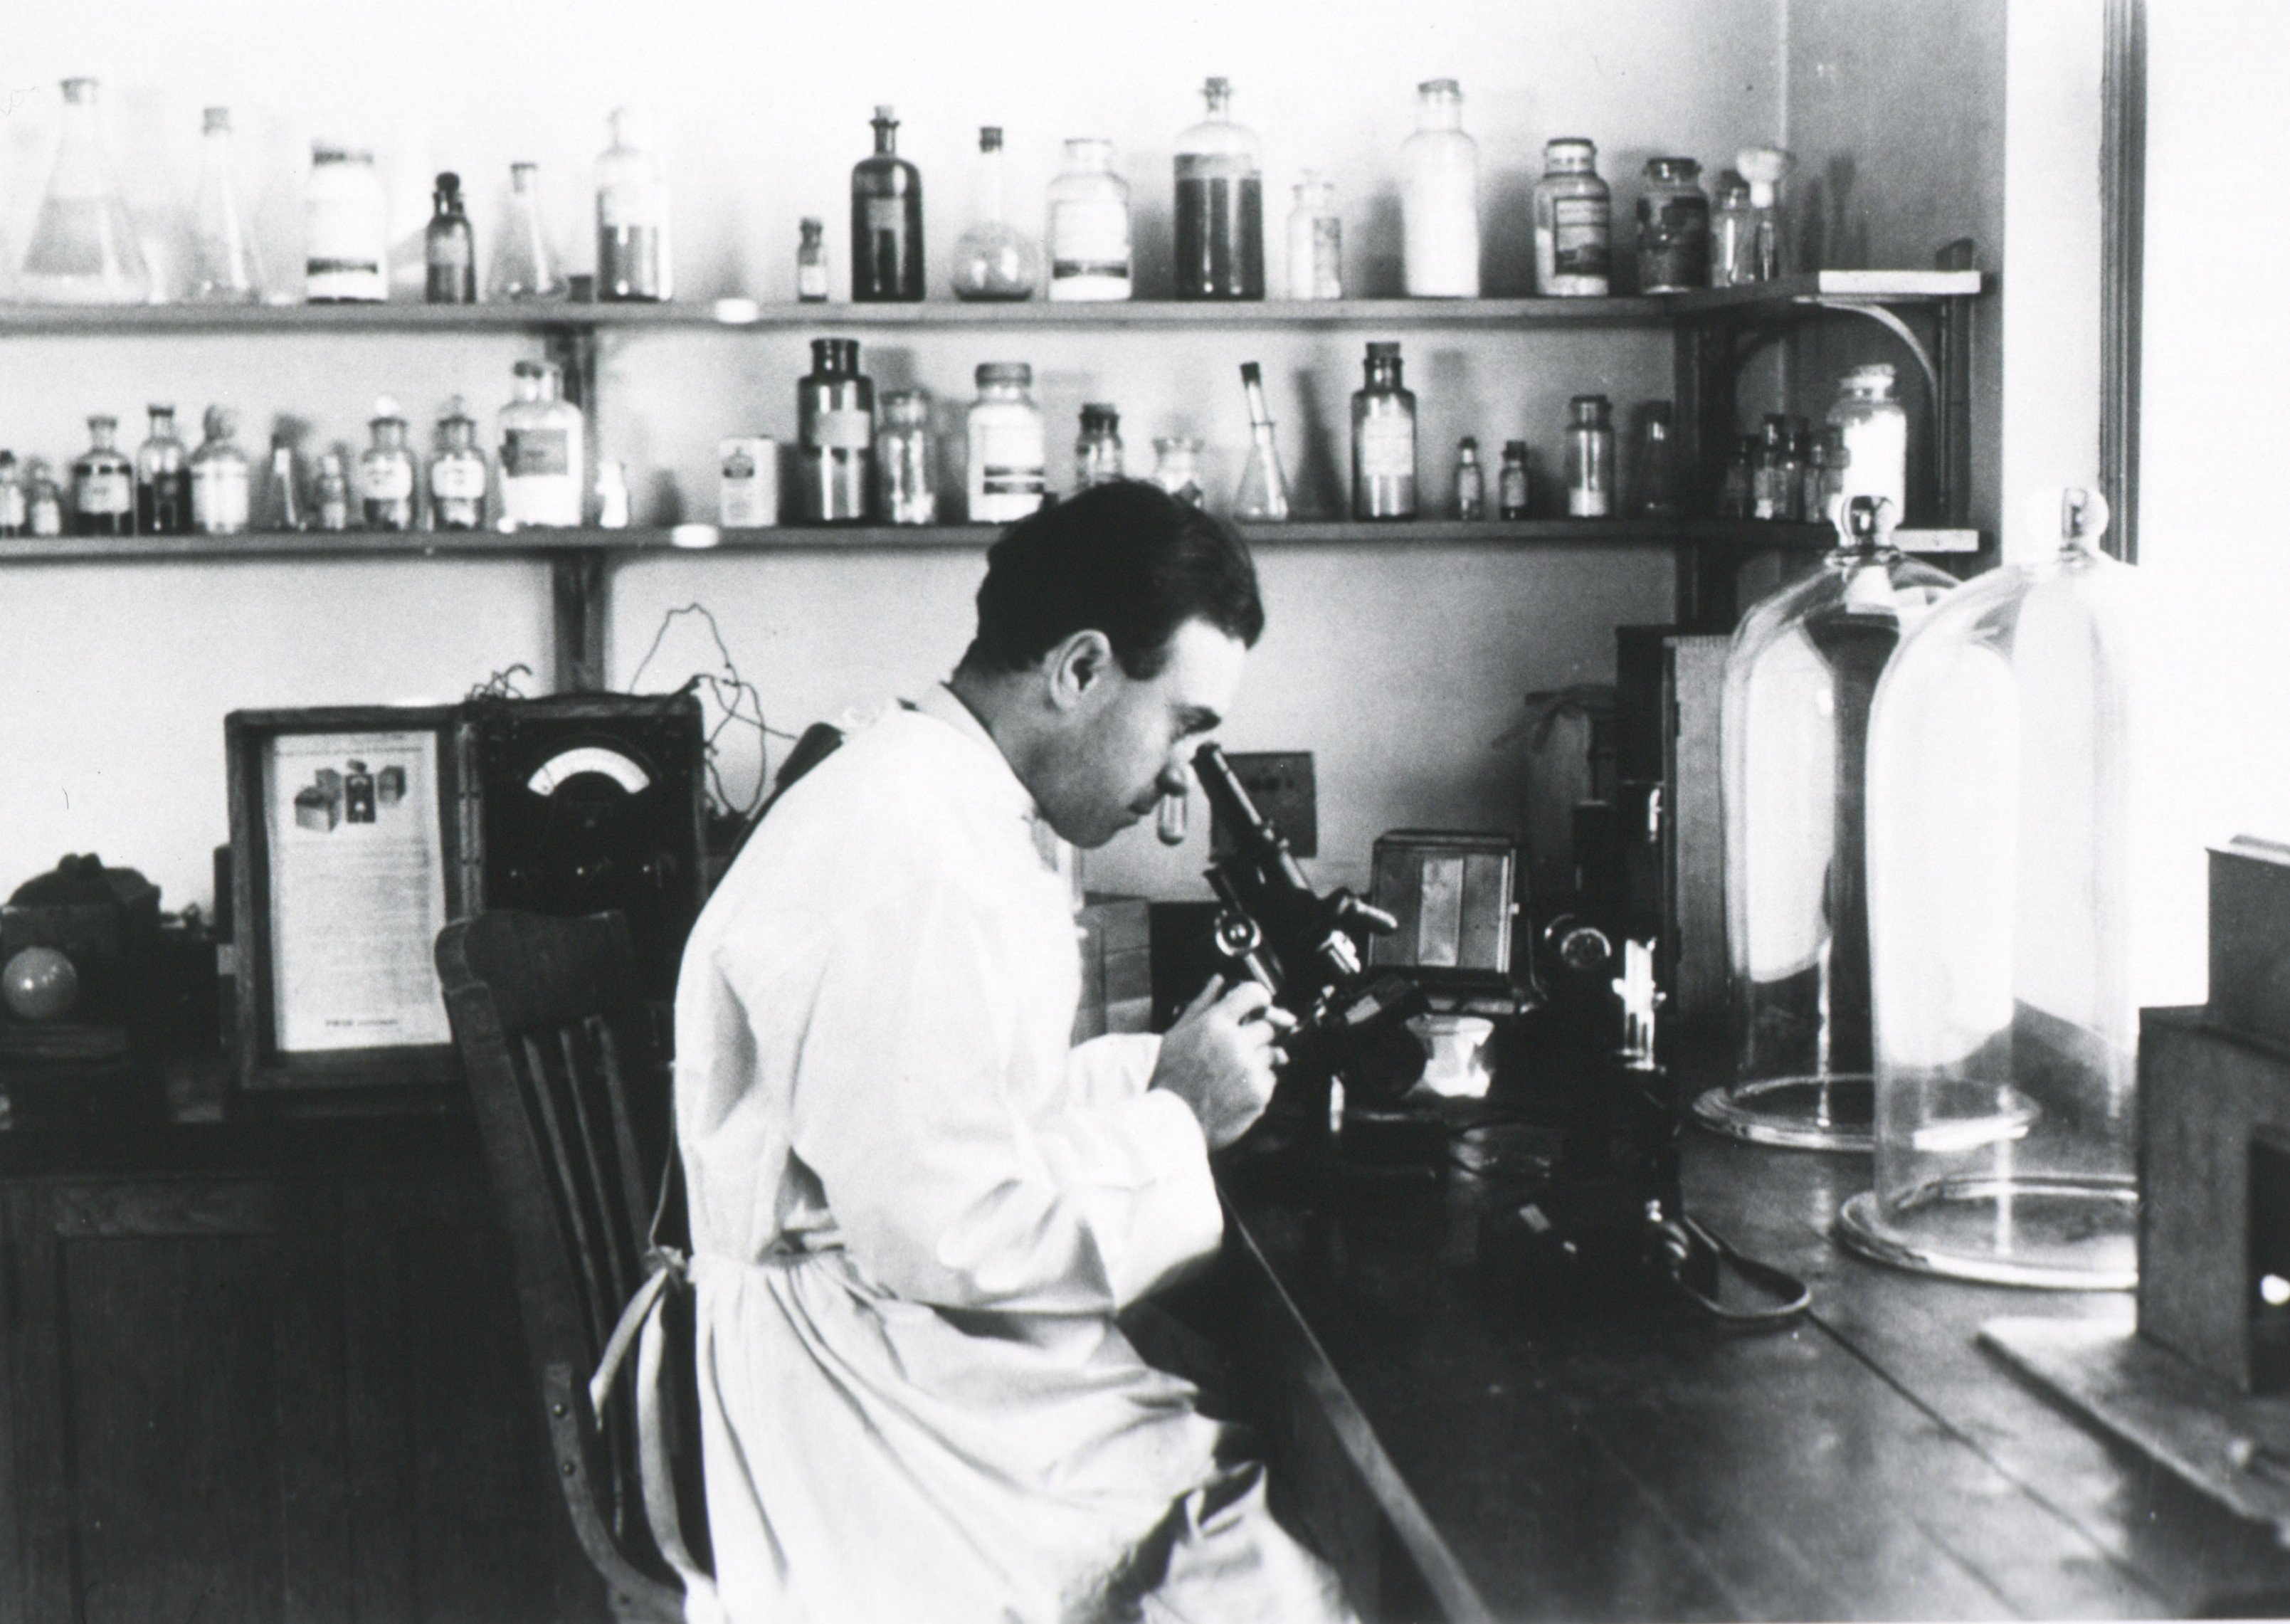 1938. Dr. Sanford Rosenthal's research on mercury poisoning in the American hat-making industry led him to develop a treatment for mercury poisoning.